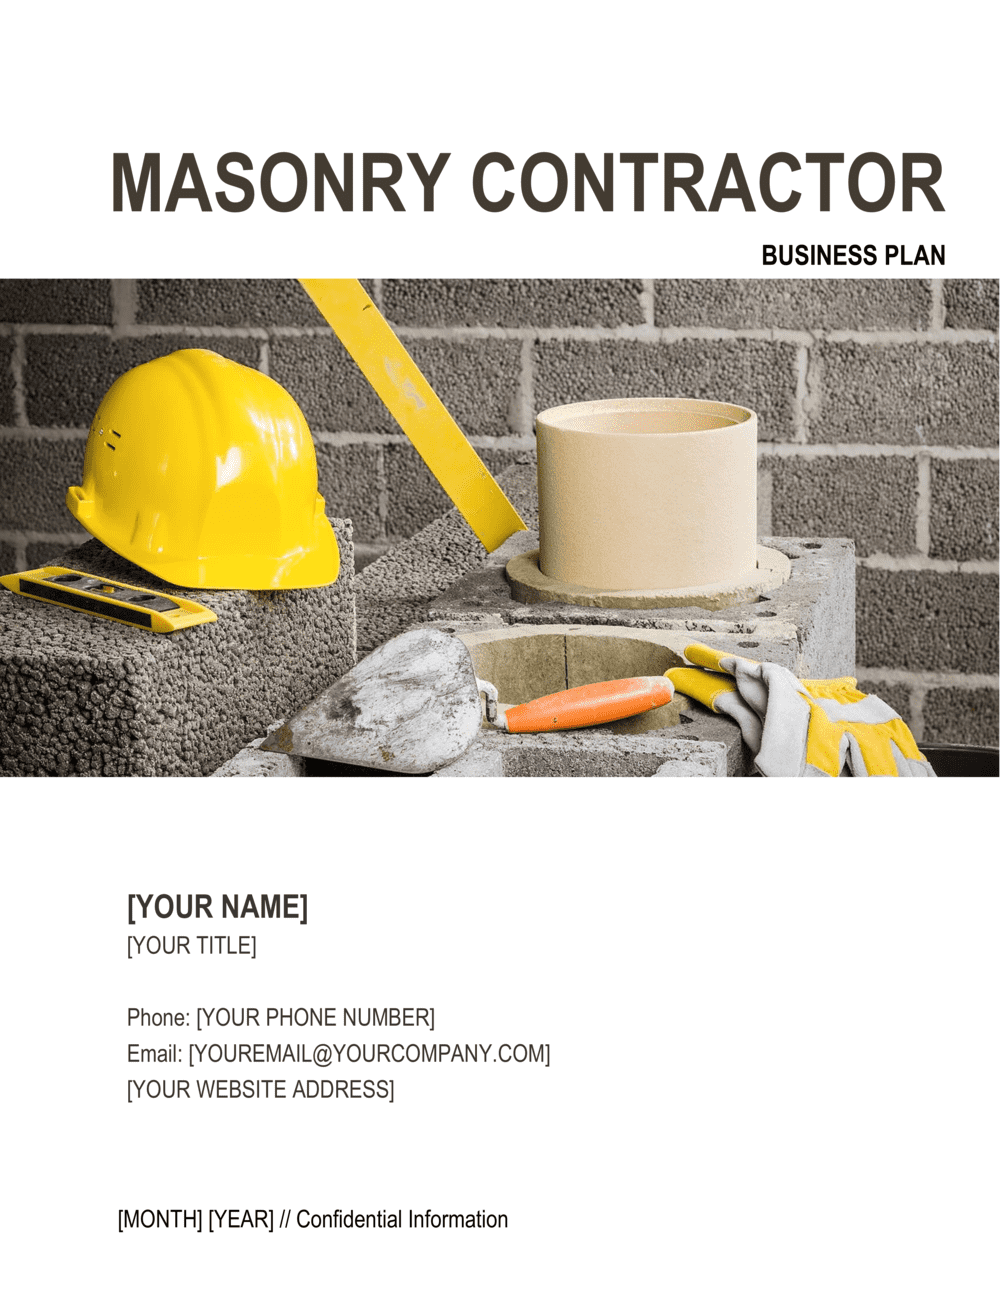 Business-in-a-Box's Masonry Contractor Business Plan Template